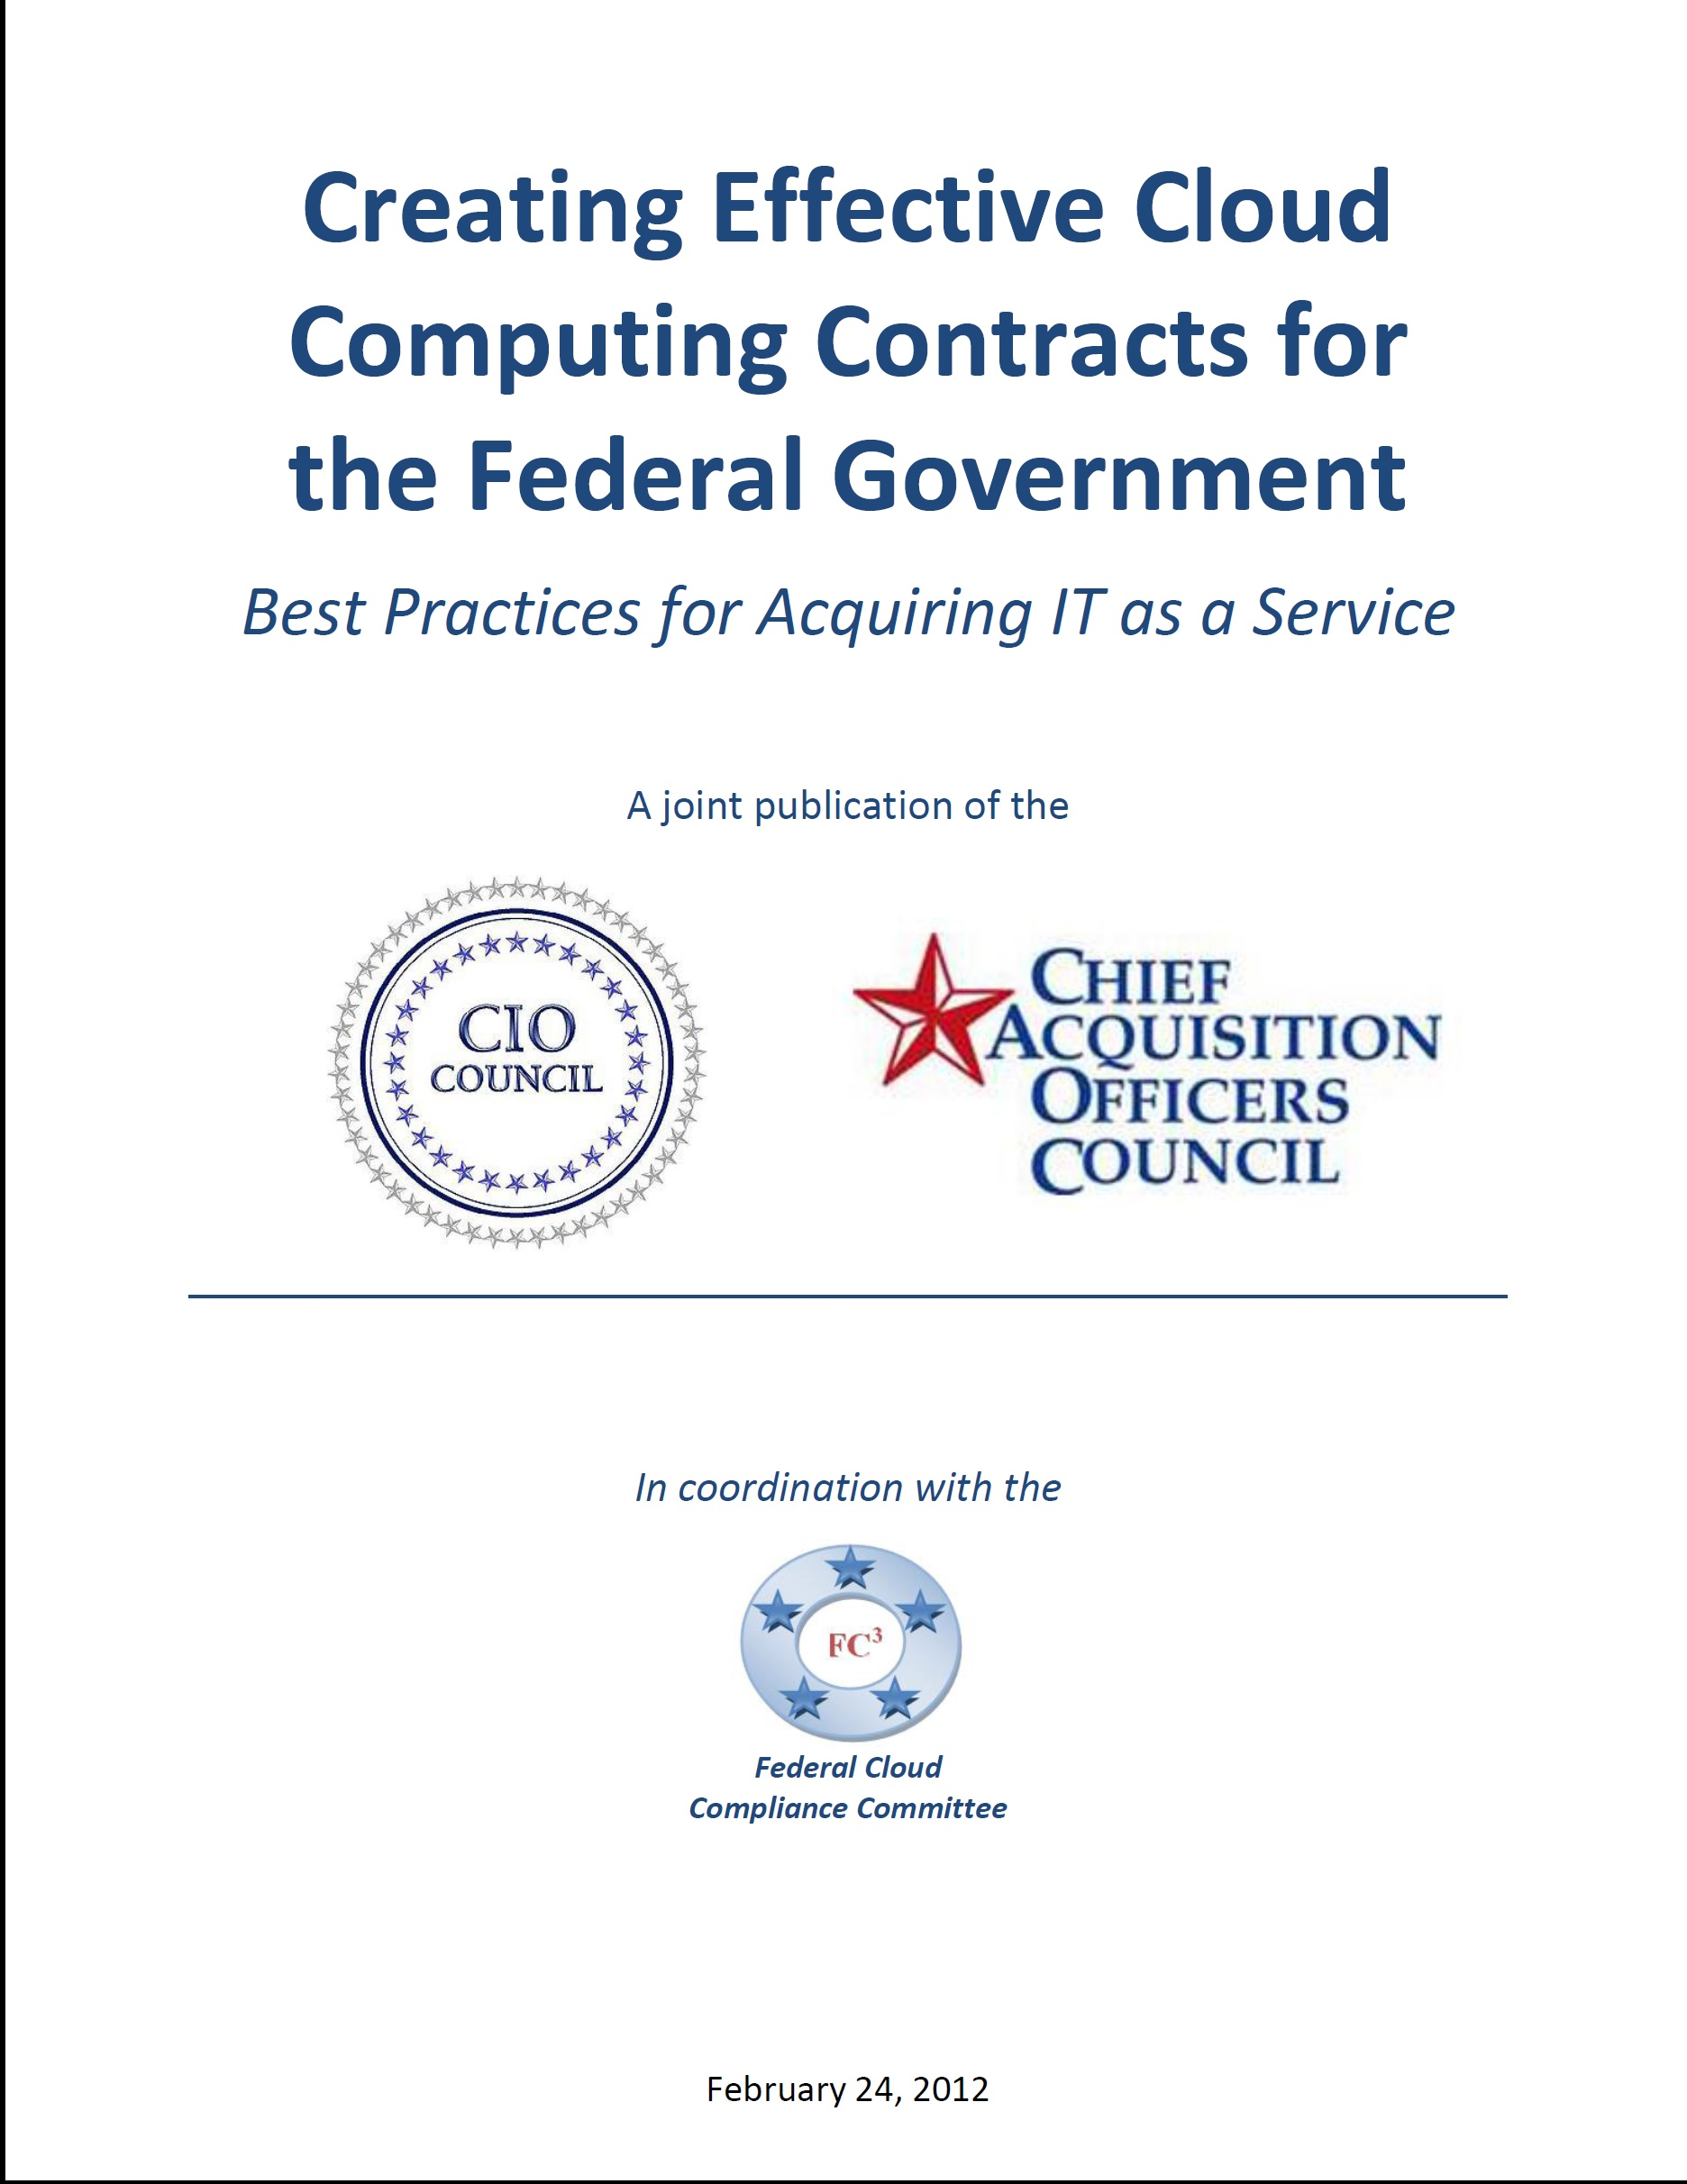 Creating Effective Cloud Computing Contracts for the Federal Government